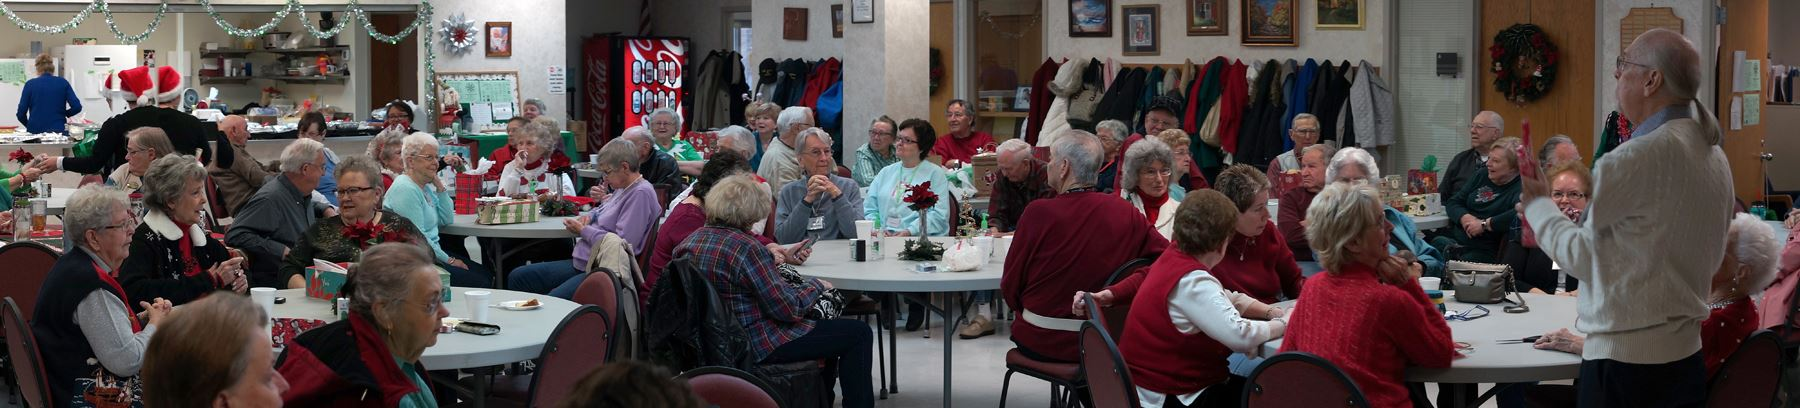 Seniors Sitting Around Tables for the Holidays